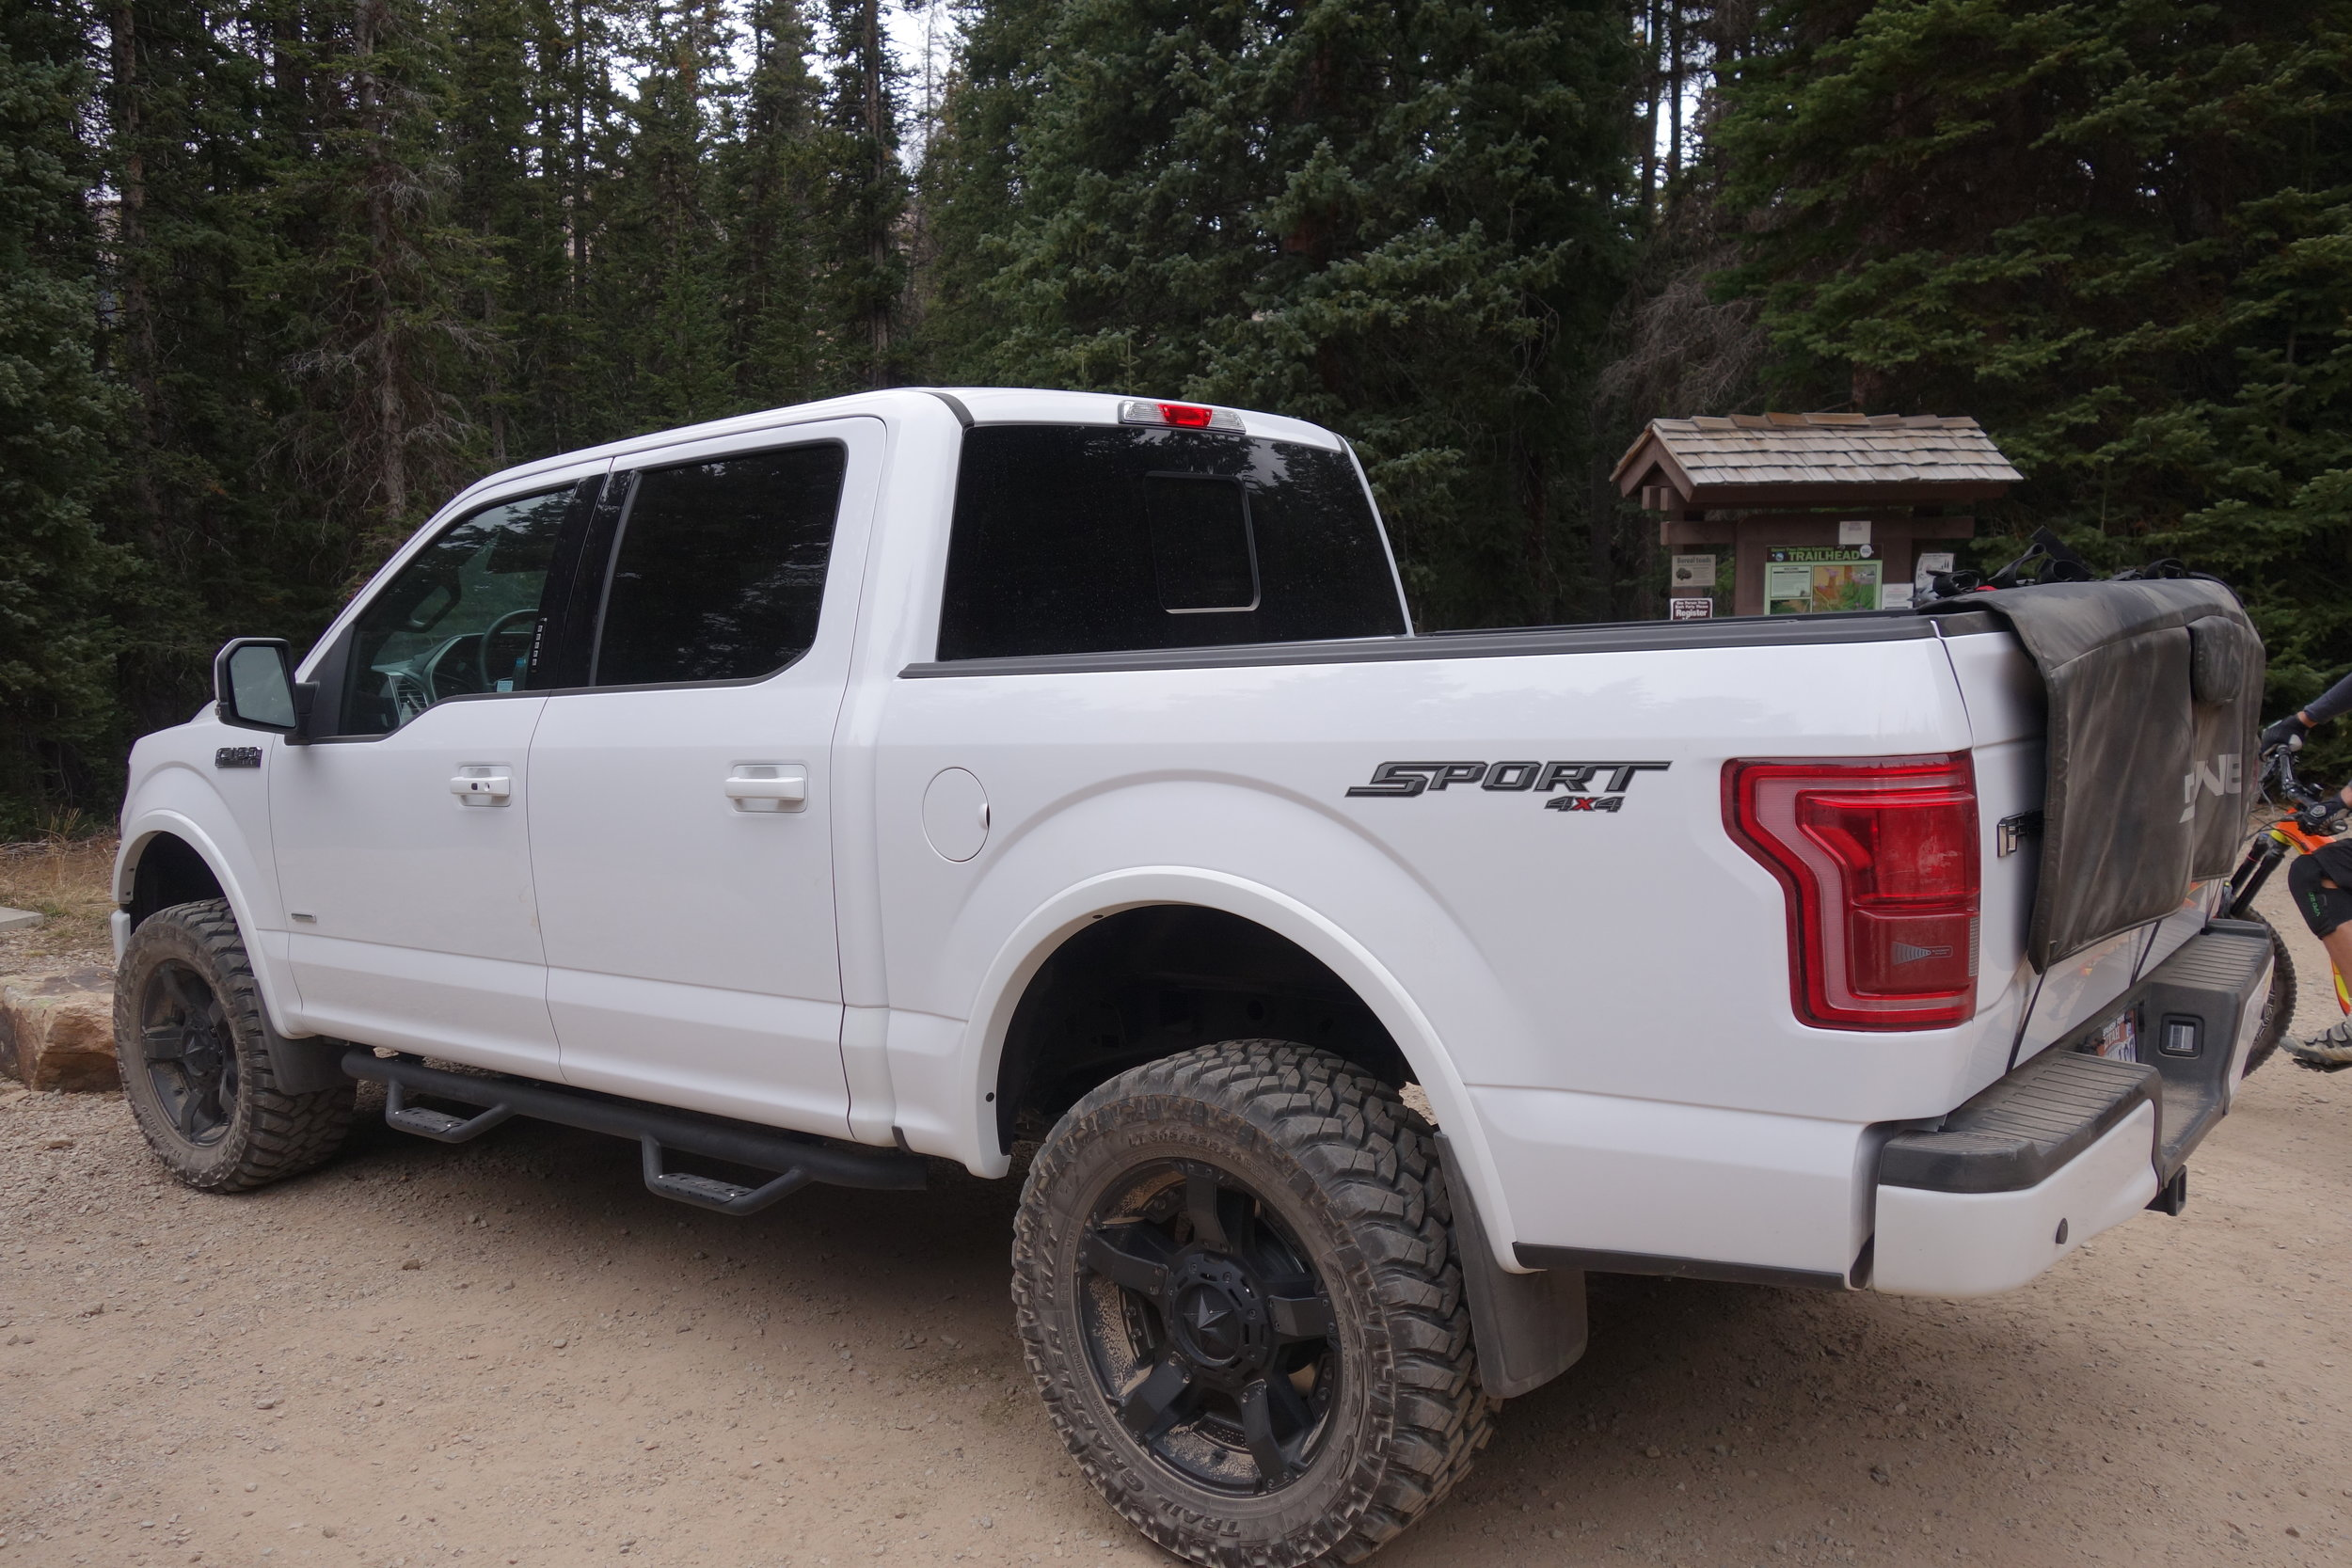 If you're American and you ride, then this is the truck you buy. Ford F150.